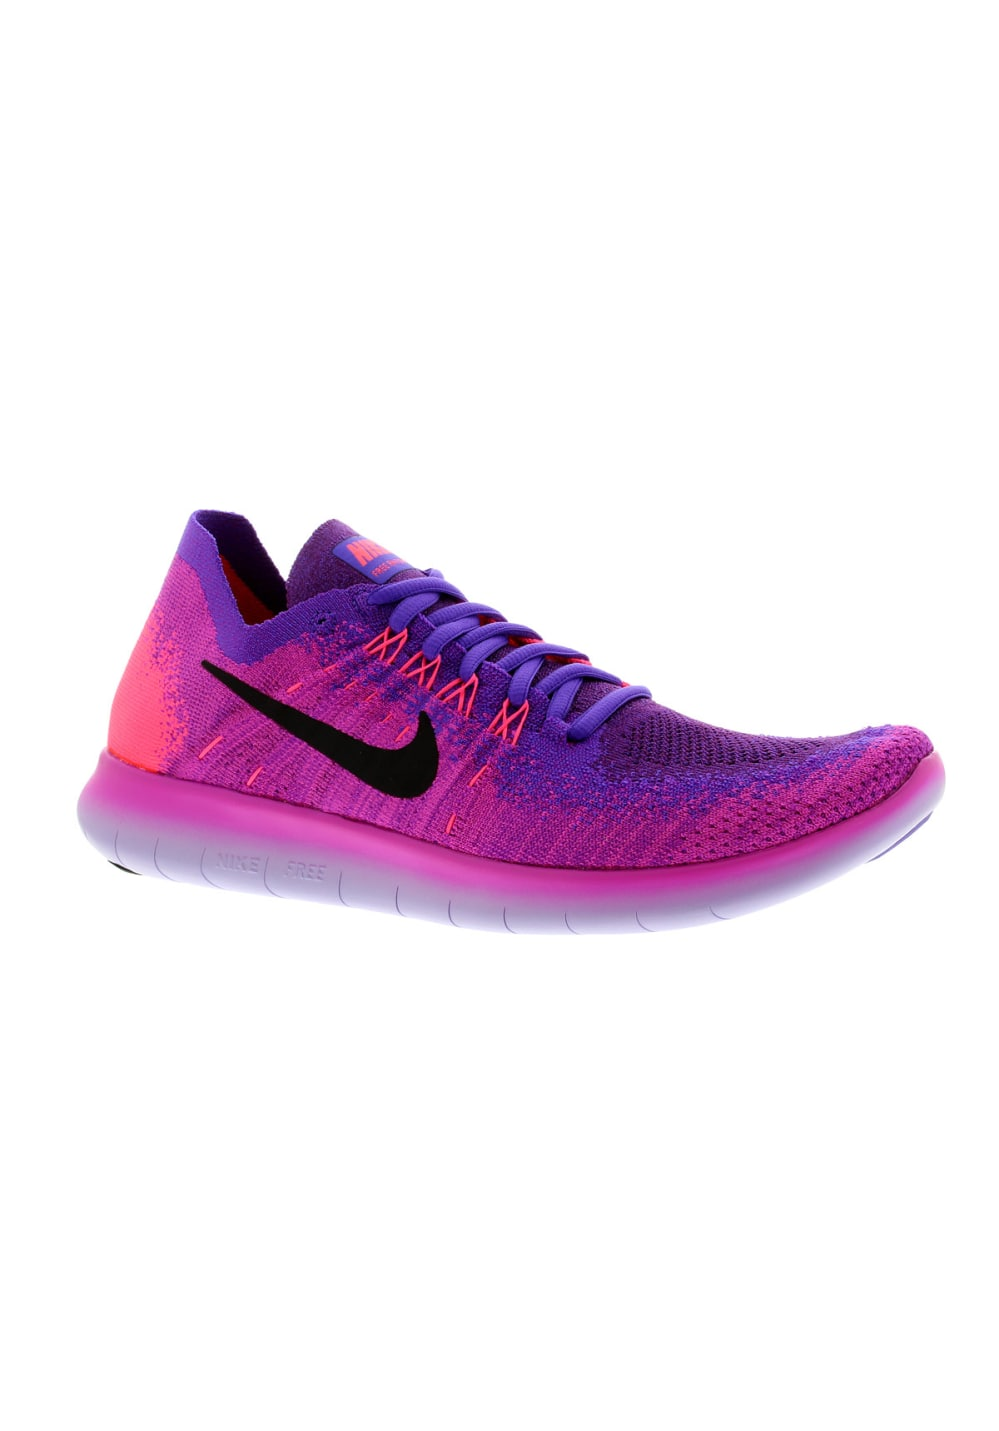 5daab2ee04b20 Next. This product is currently out of stock. Nike. Free RN Flyknit ...